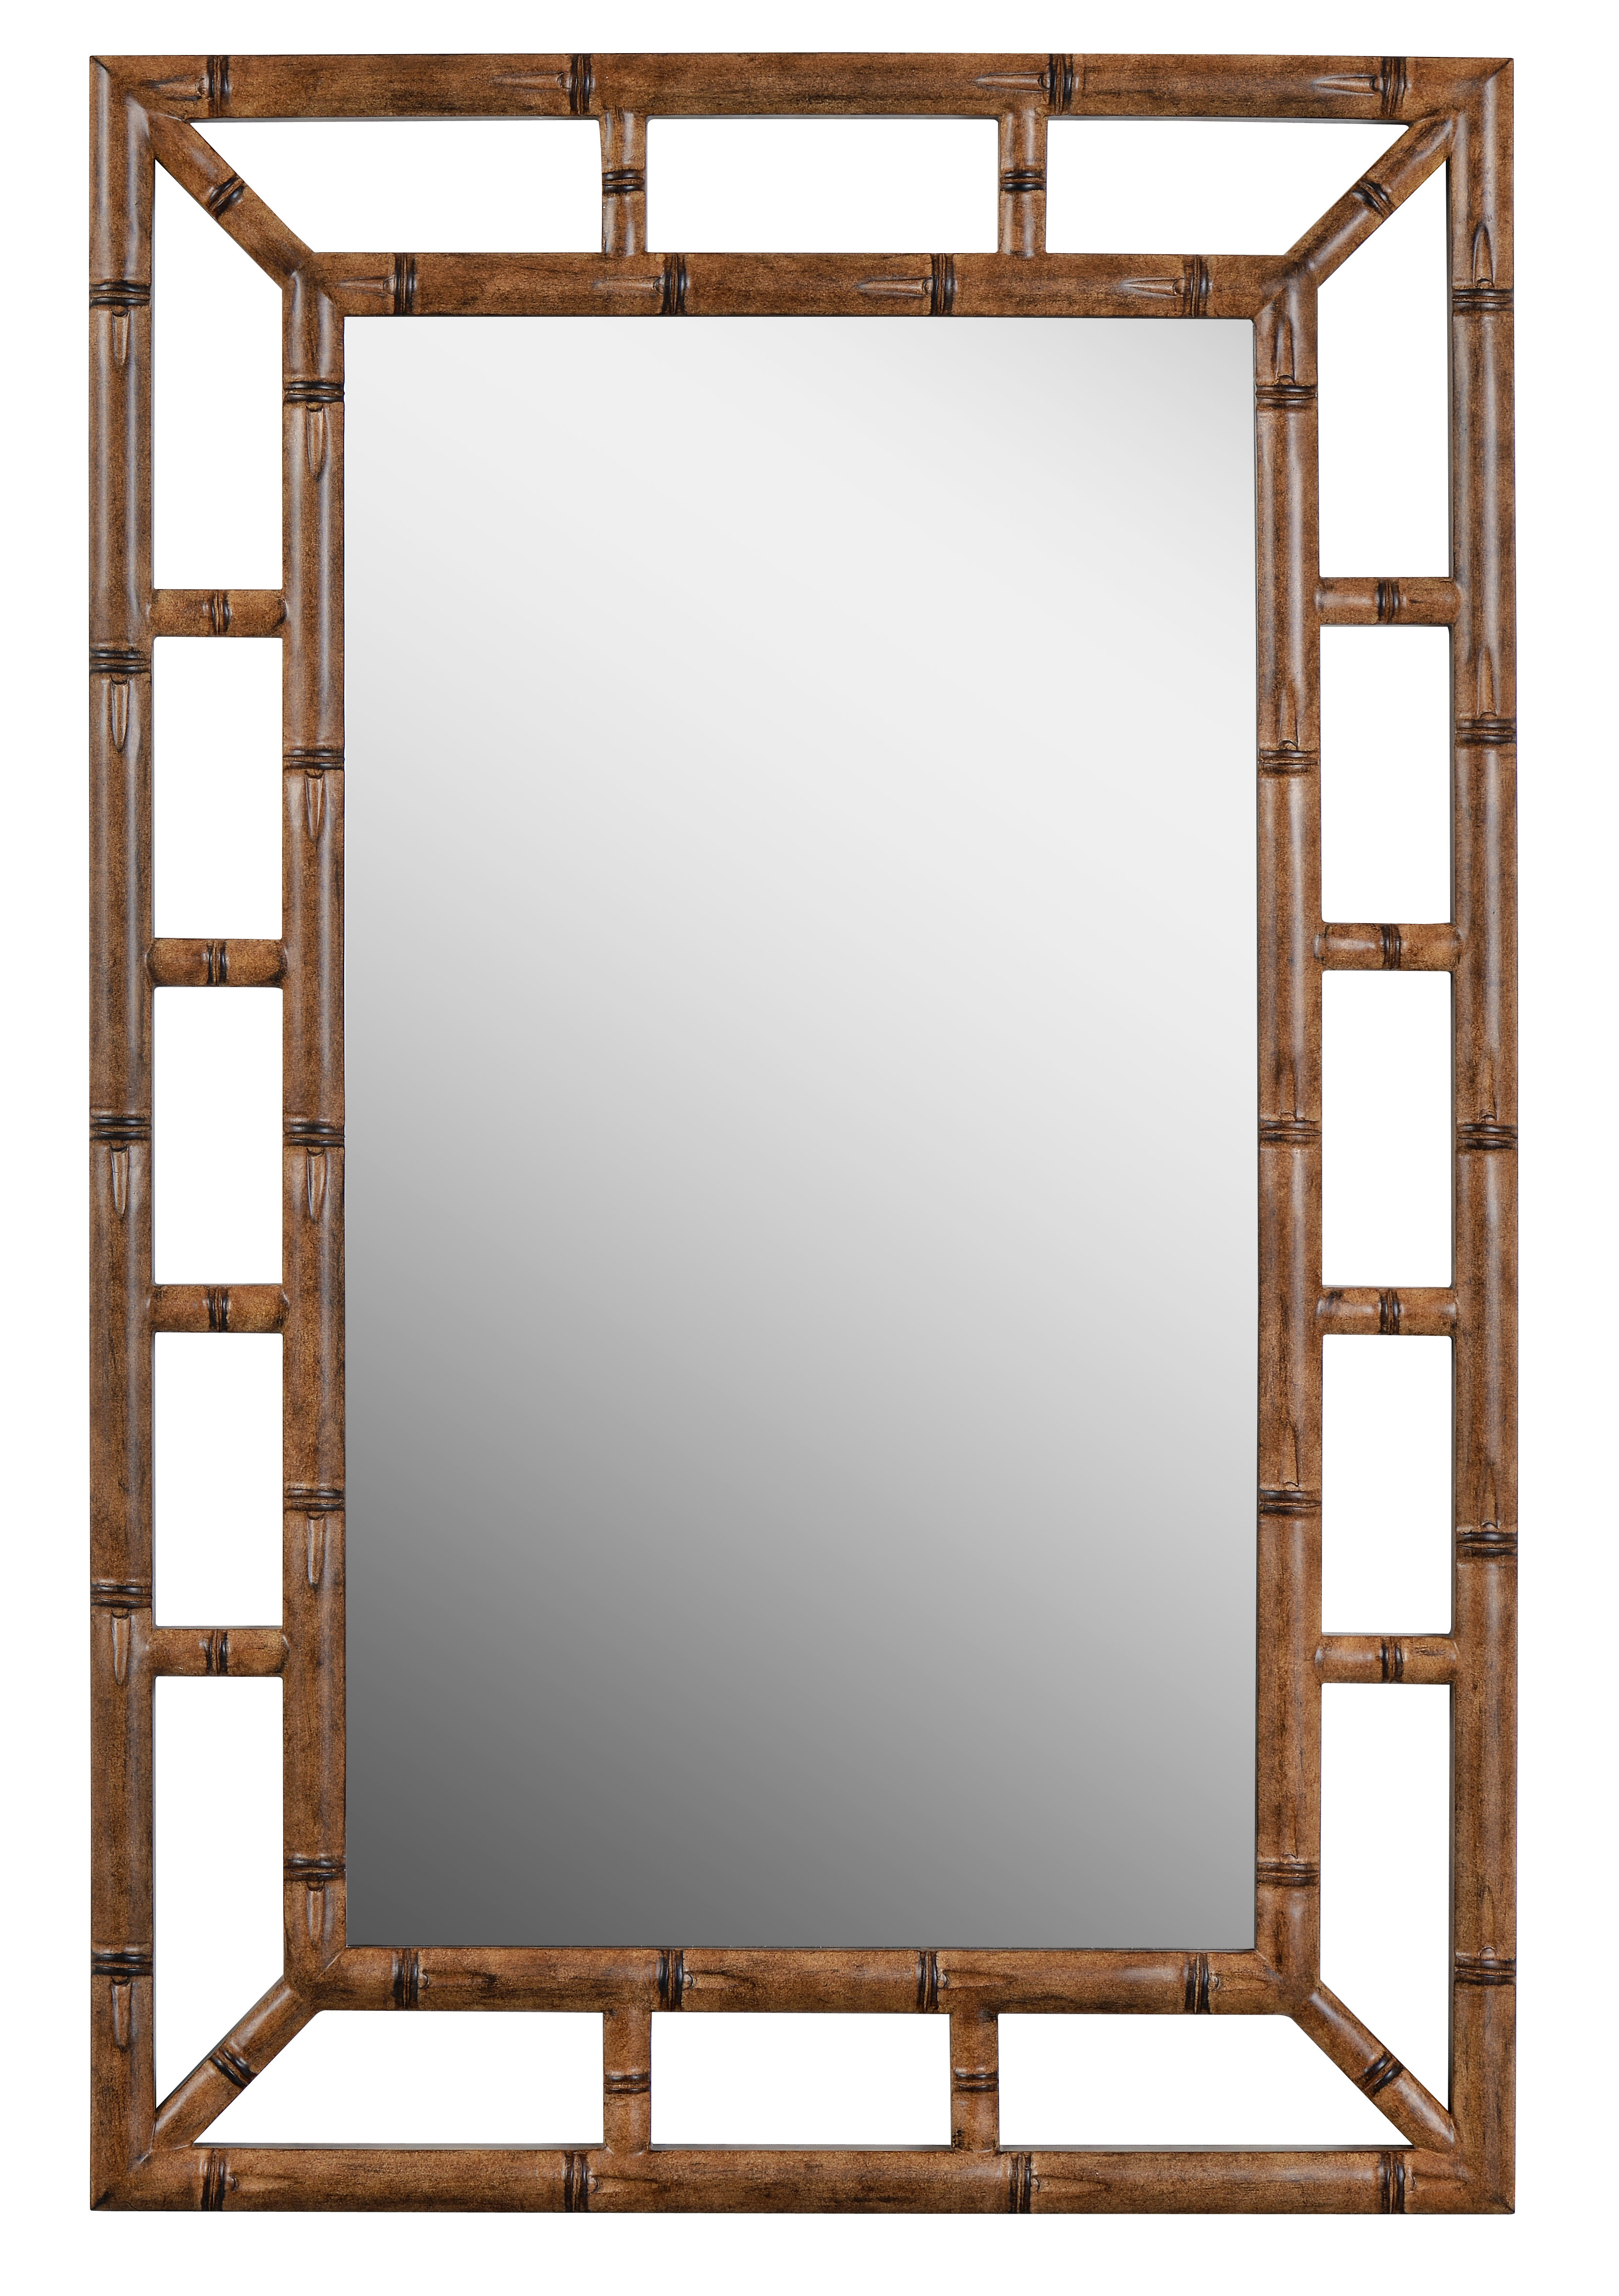 Cleta Bamboo Brown Traditional Beveled Wall Mirror For 2019 2 Piece Priscilla Square Traditional Beveled Distressed Accent Mirror Sets (View 7 of 20)